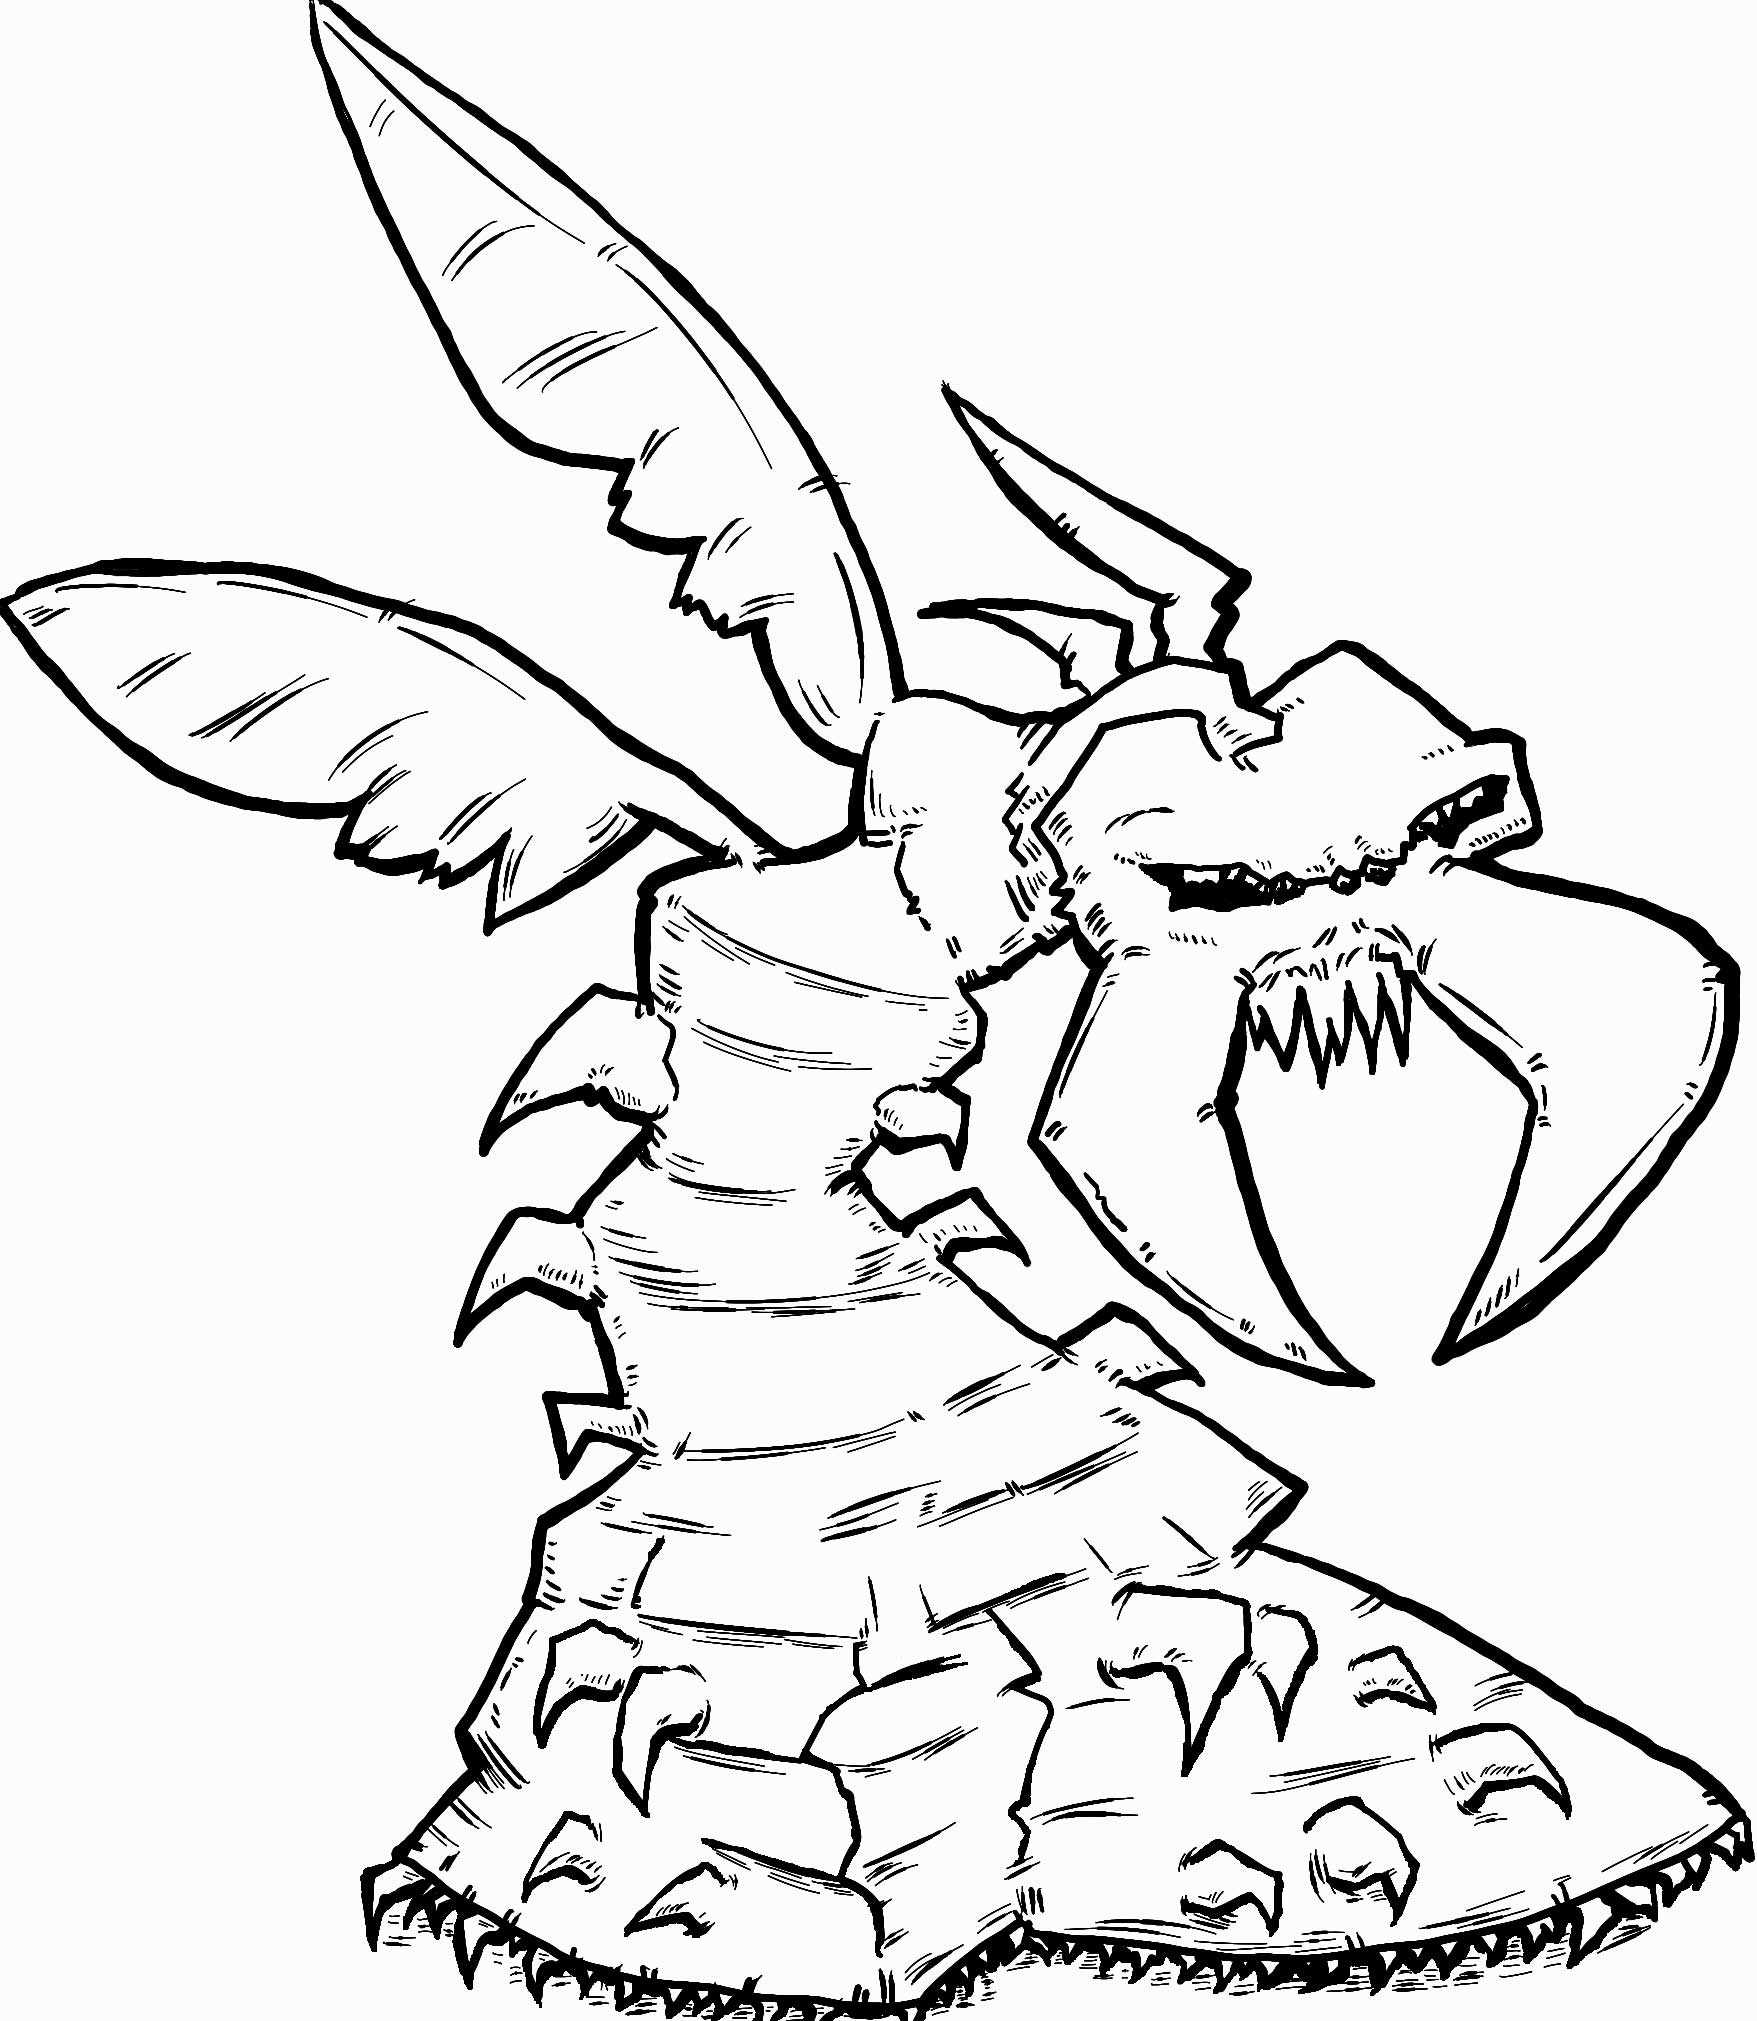 Creature Design, The Wormbug Completed